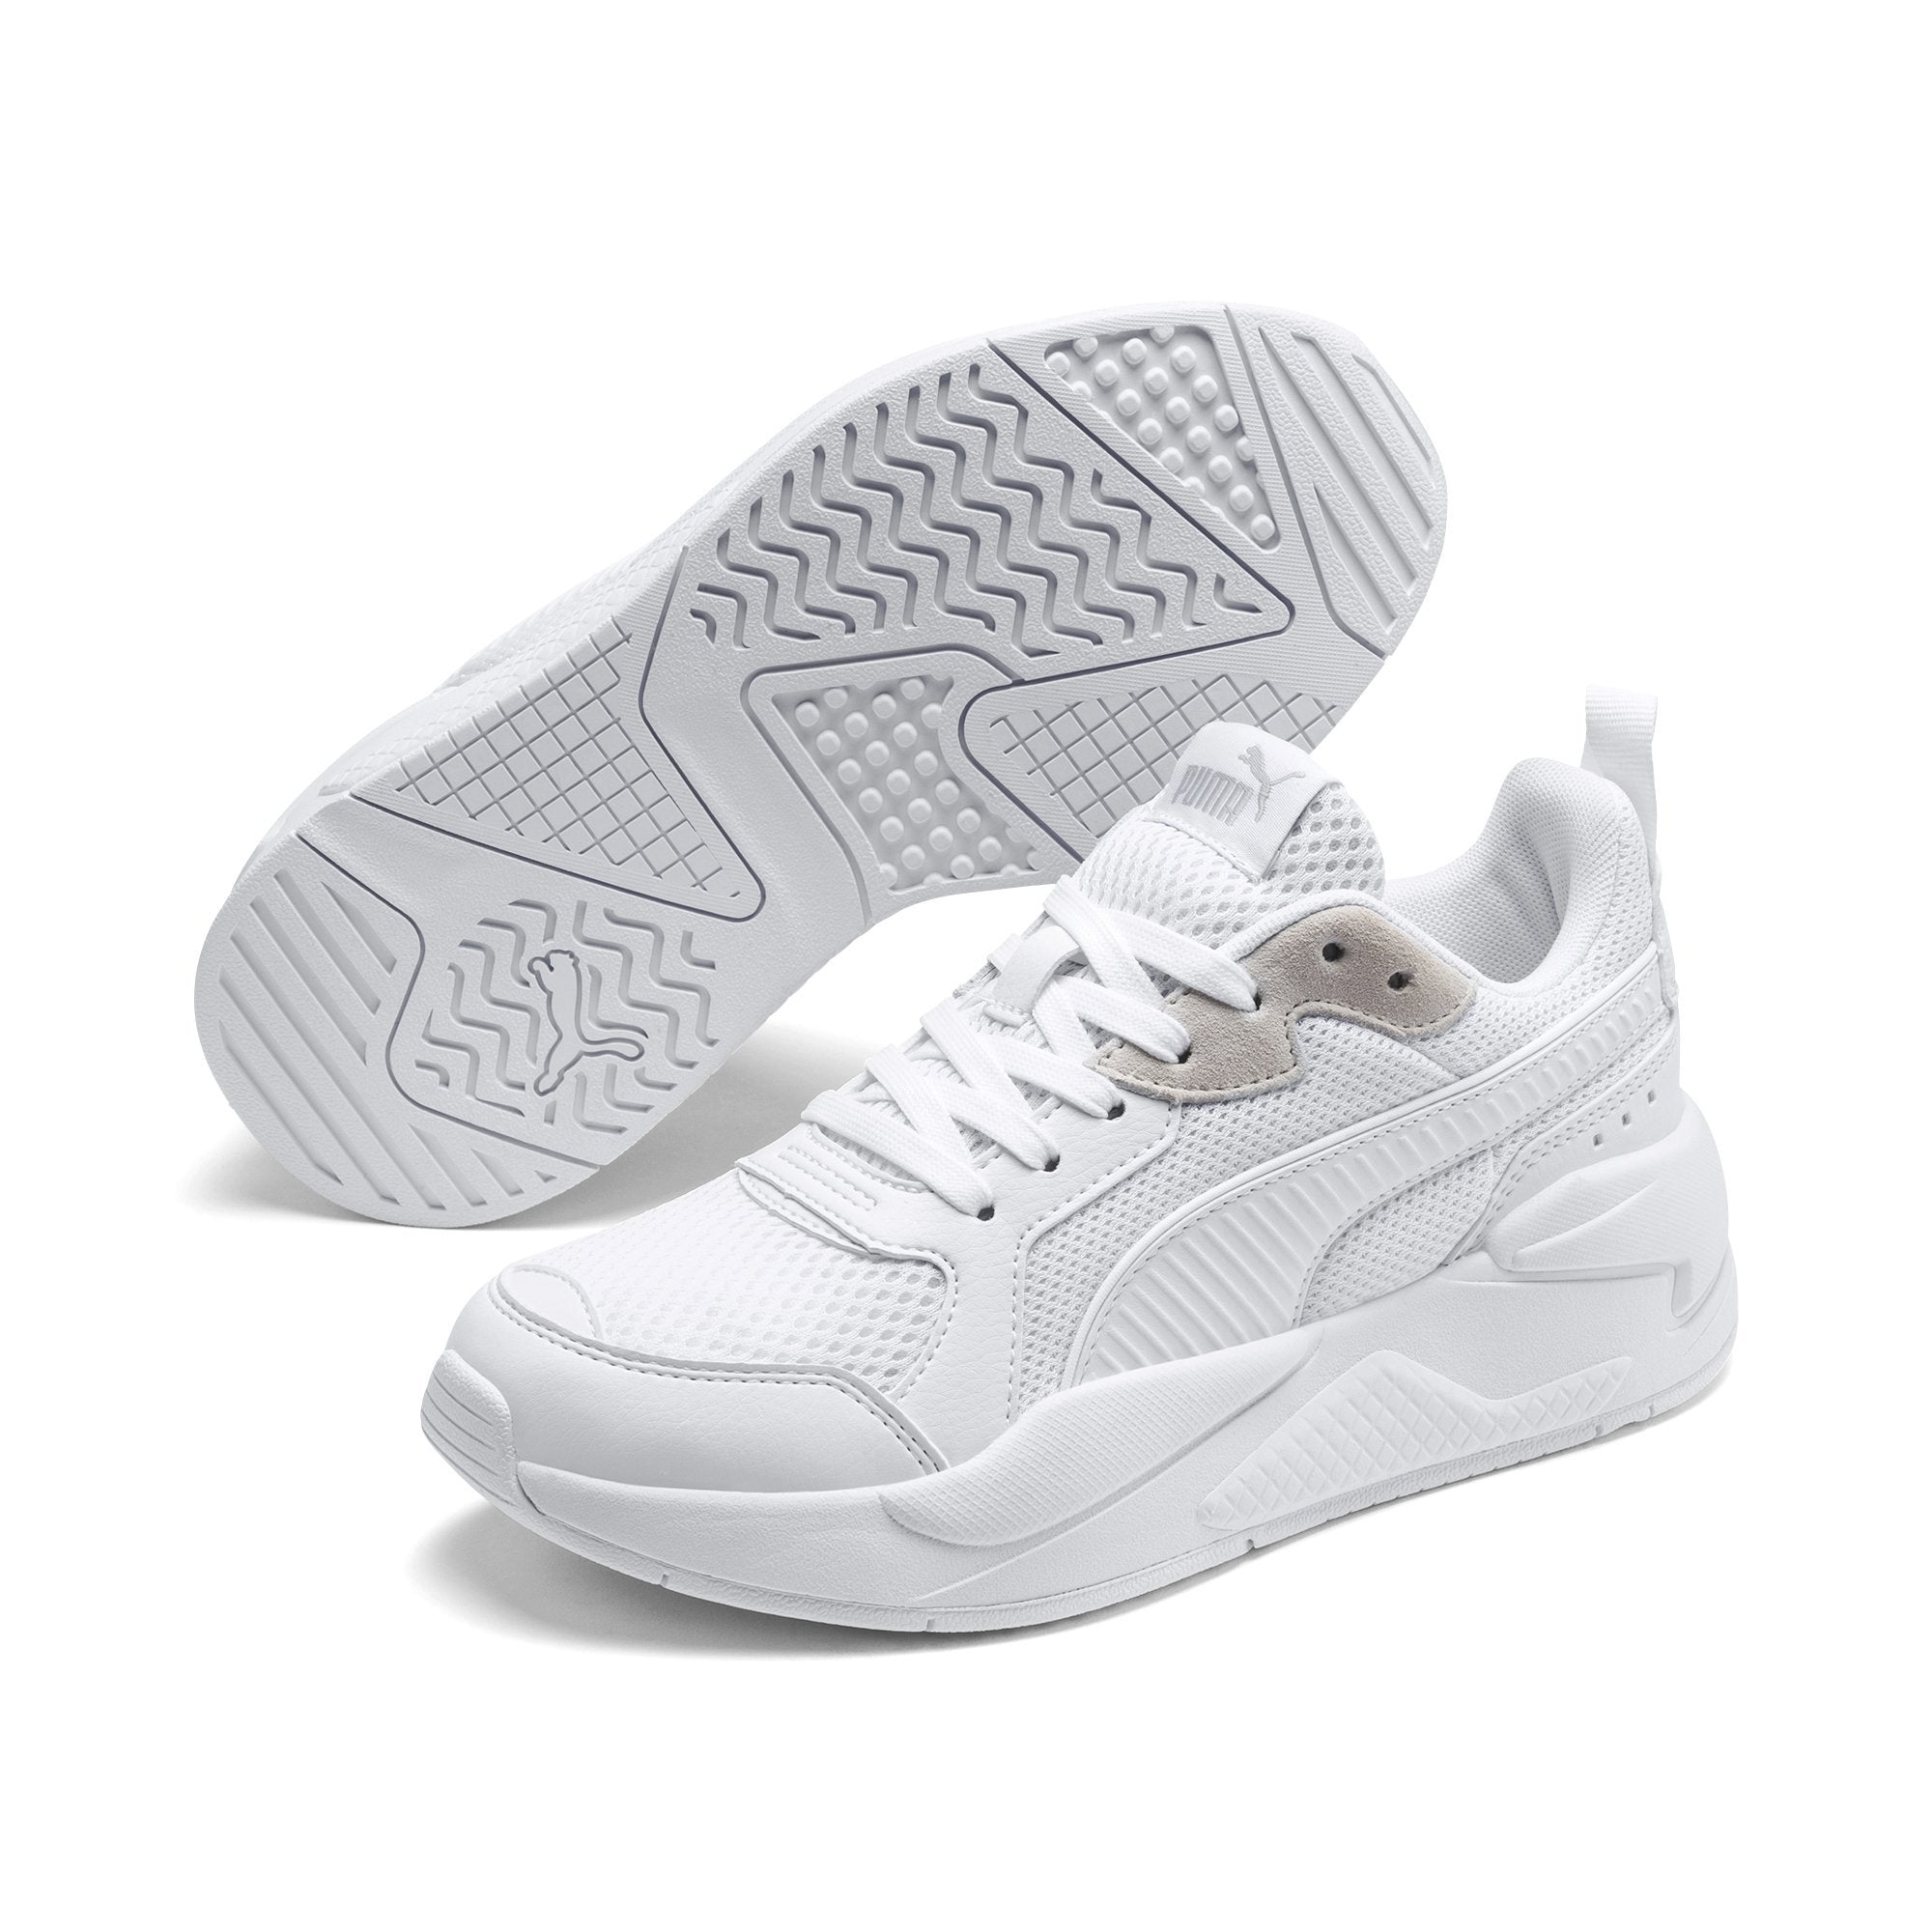 Puma X-Ray Junior - Puma White-Gray Violet SP-Footwear-Kids Puma